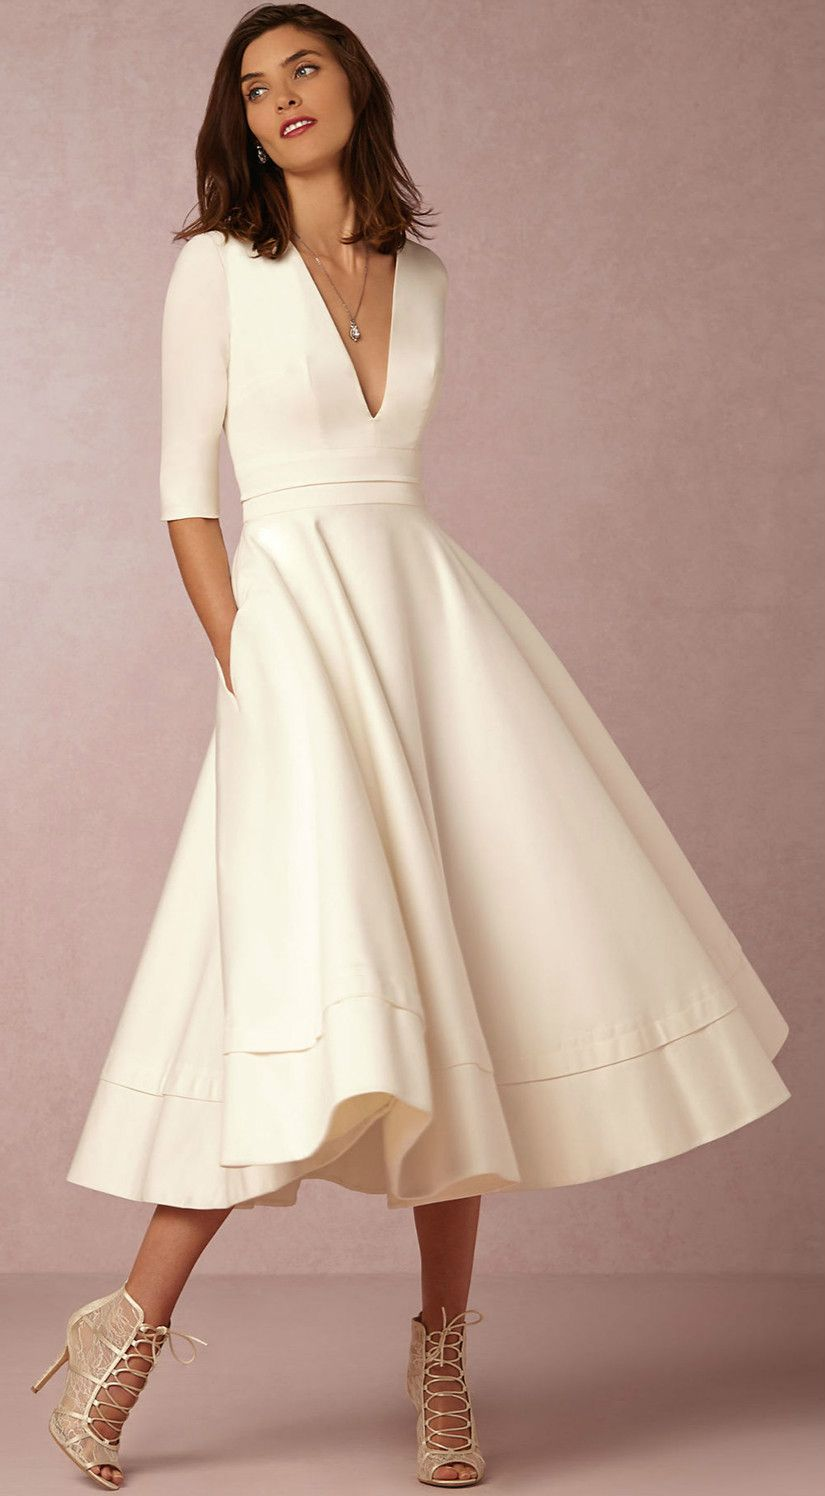 04933de76f9 Neck Half Sleeve Solid A-line mimimalistic dress in pure white. You can be  a boss